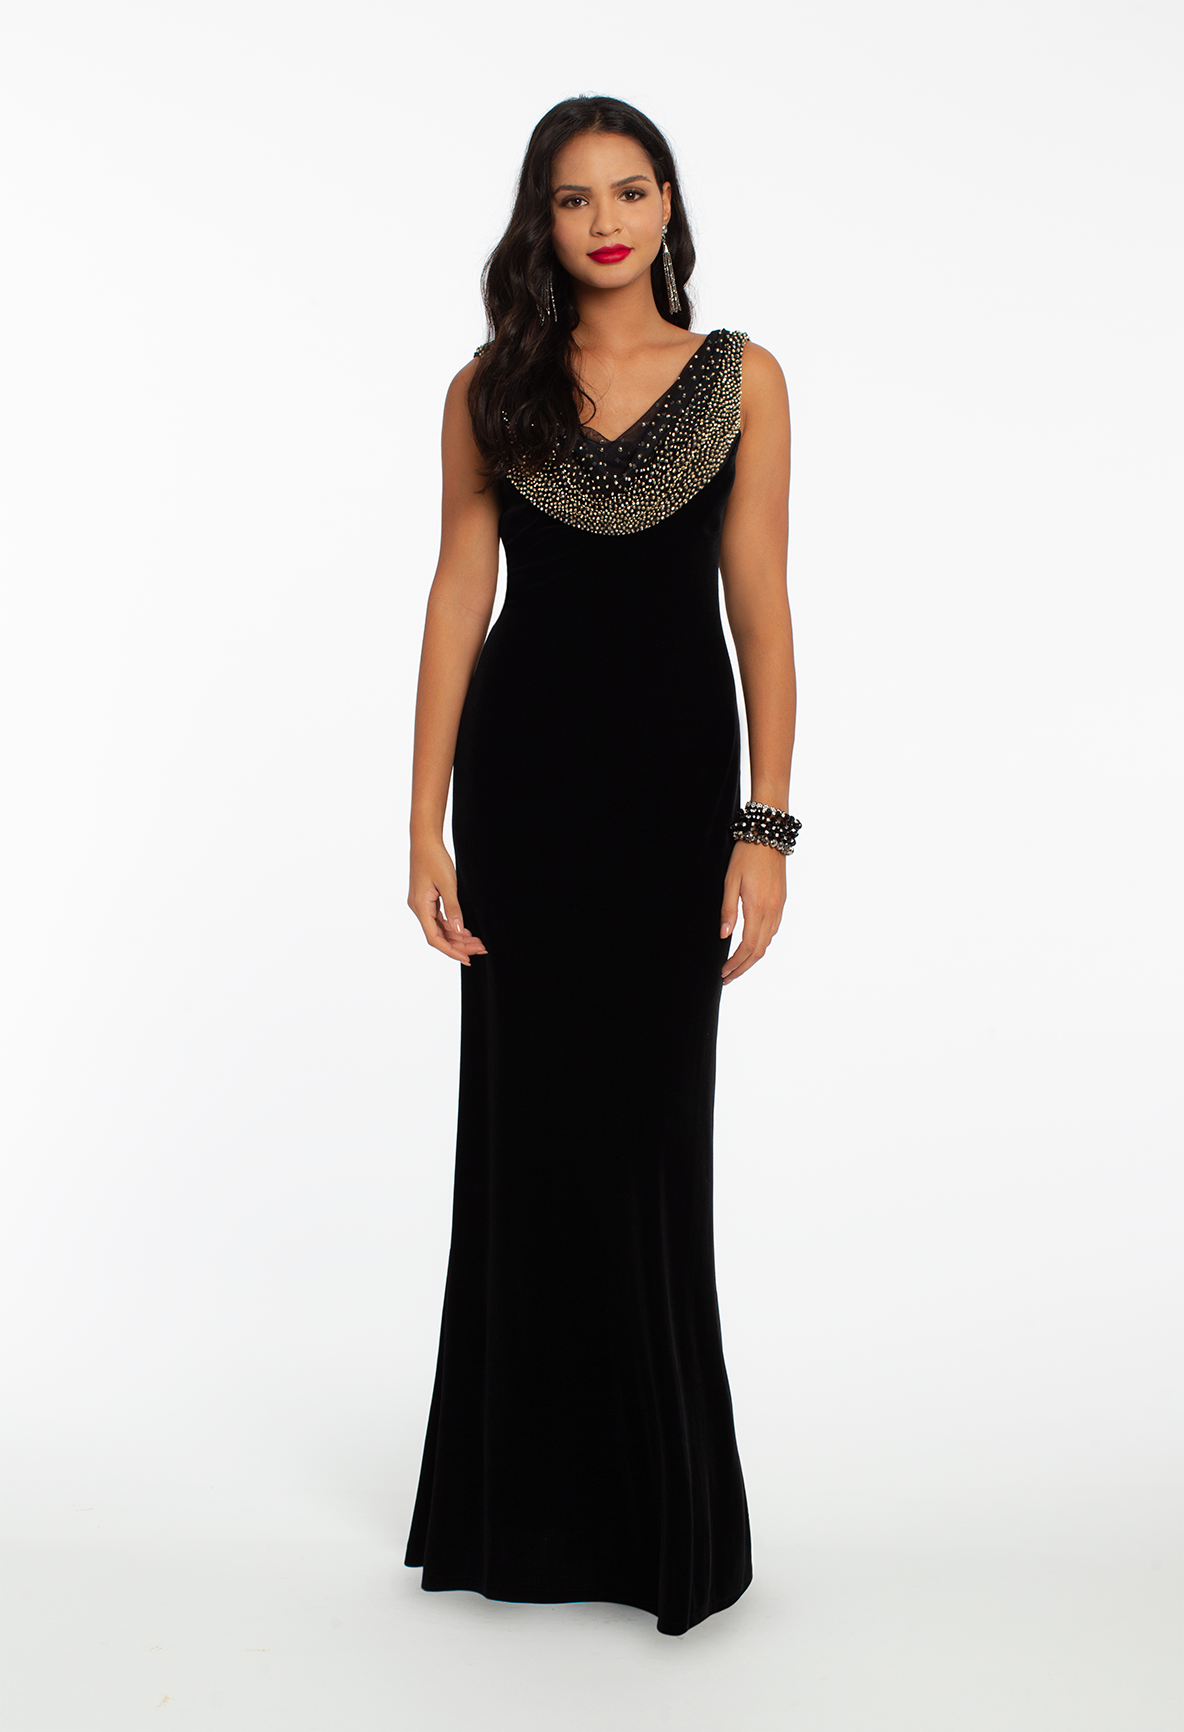 f4c3b81f758b Velvet is a must when it comes to winter weddings: this elegant mother of  the bride dress is not only soft and sophisticated, but the flattering  fitted ...